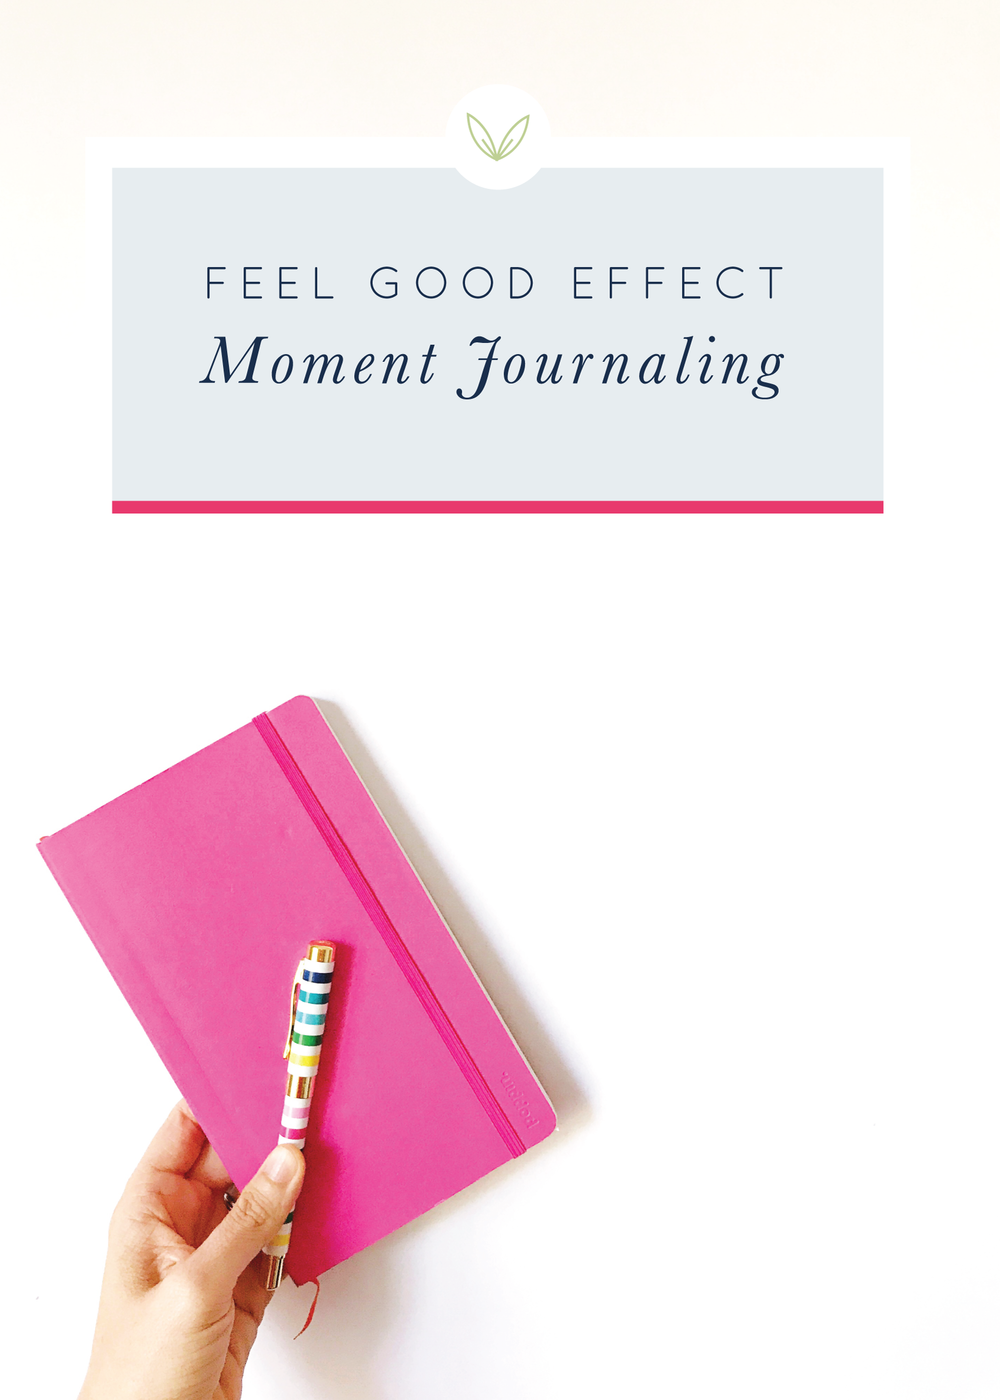 Feel Good Effect: Moment Journaling